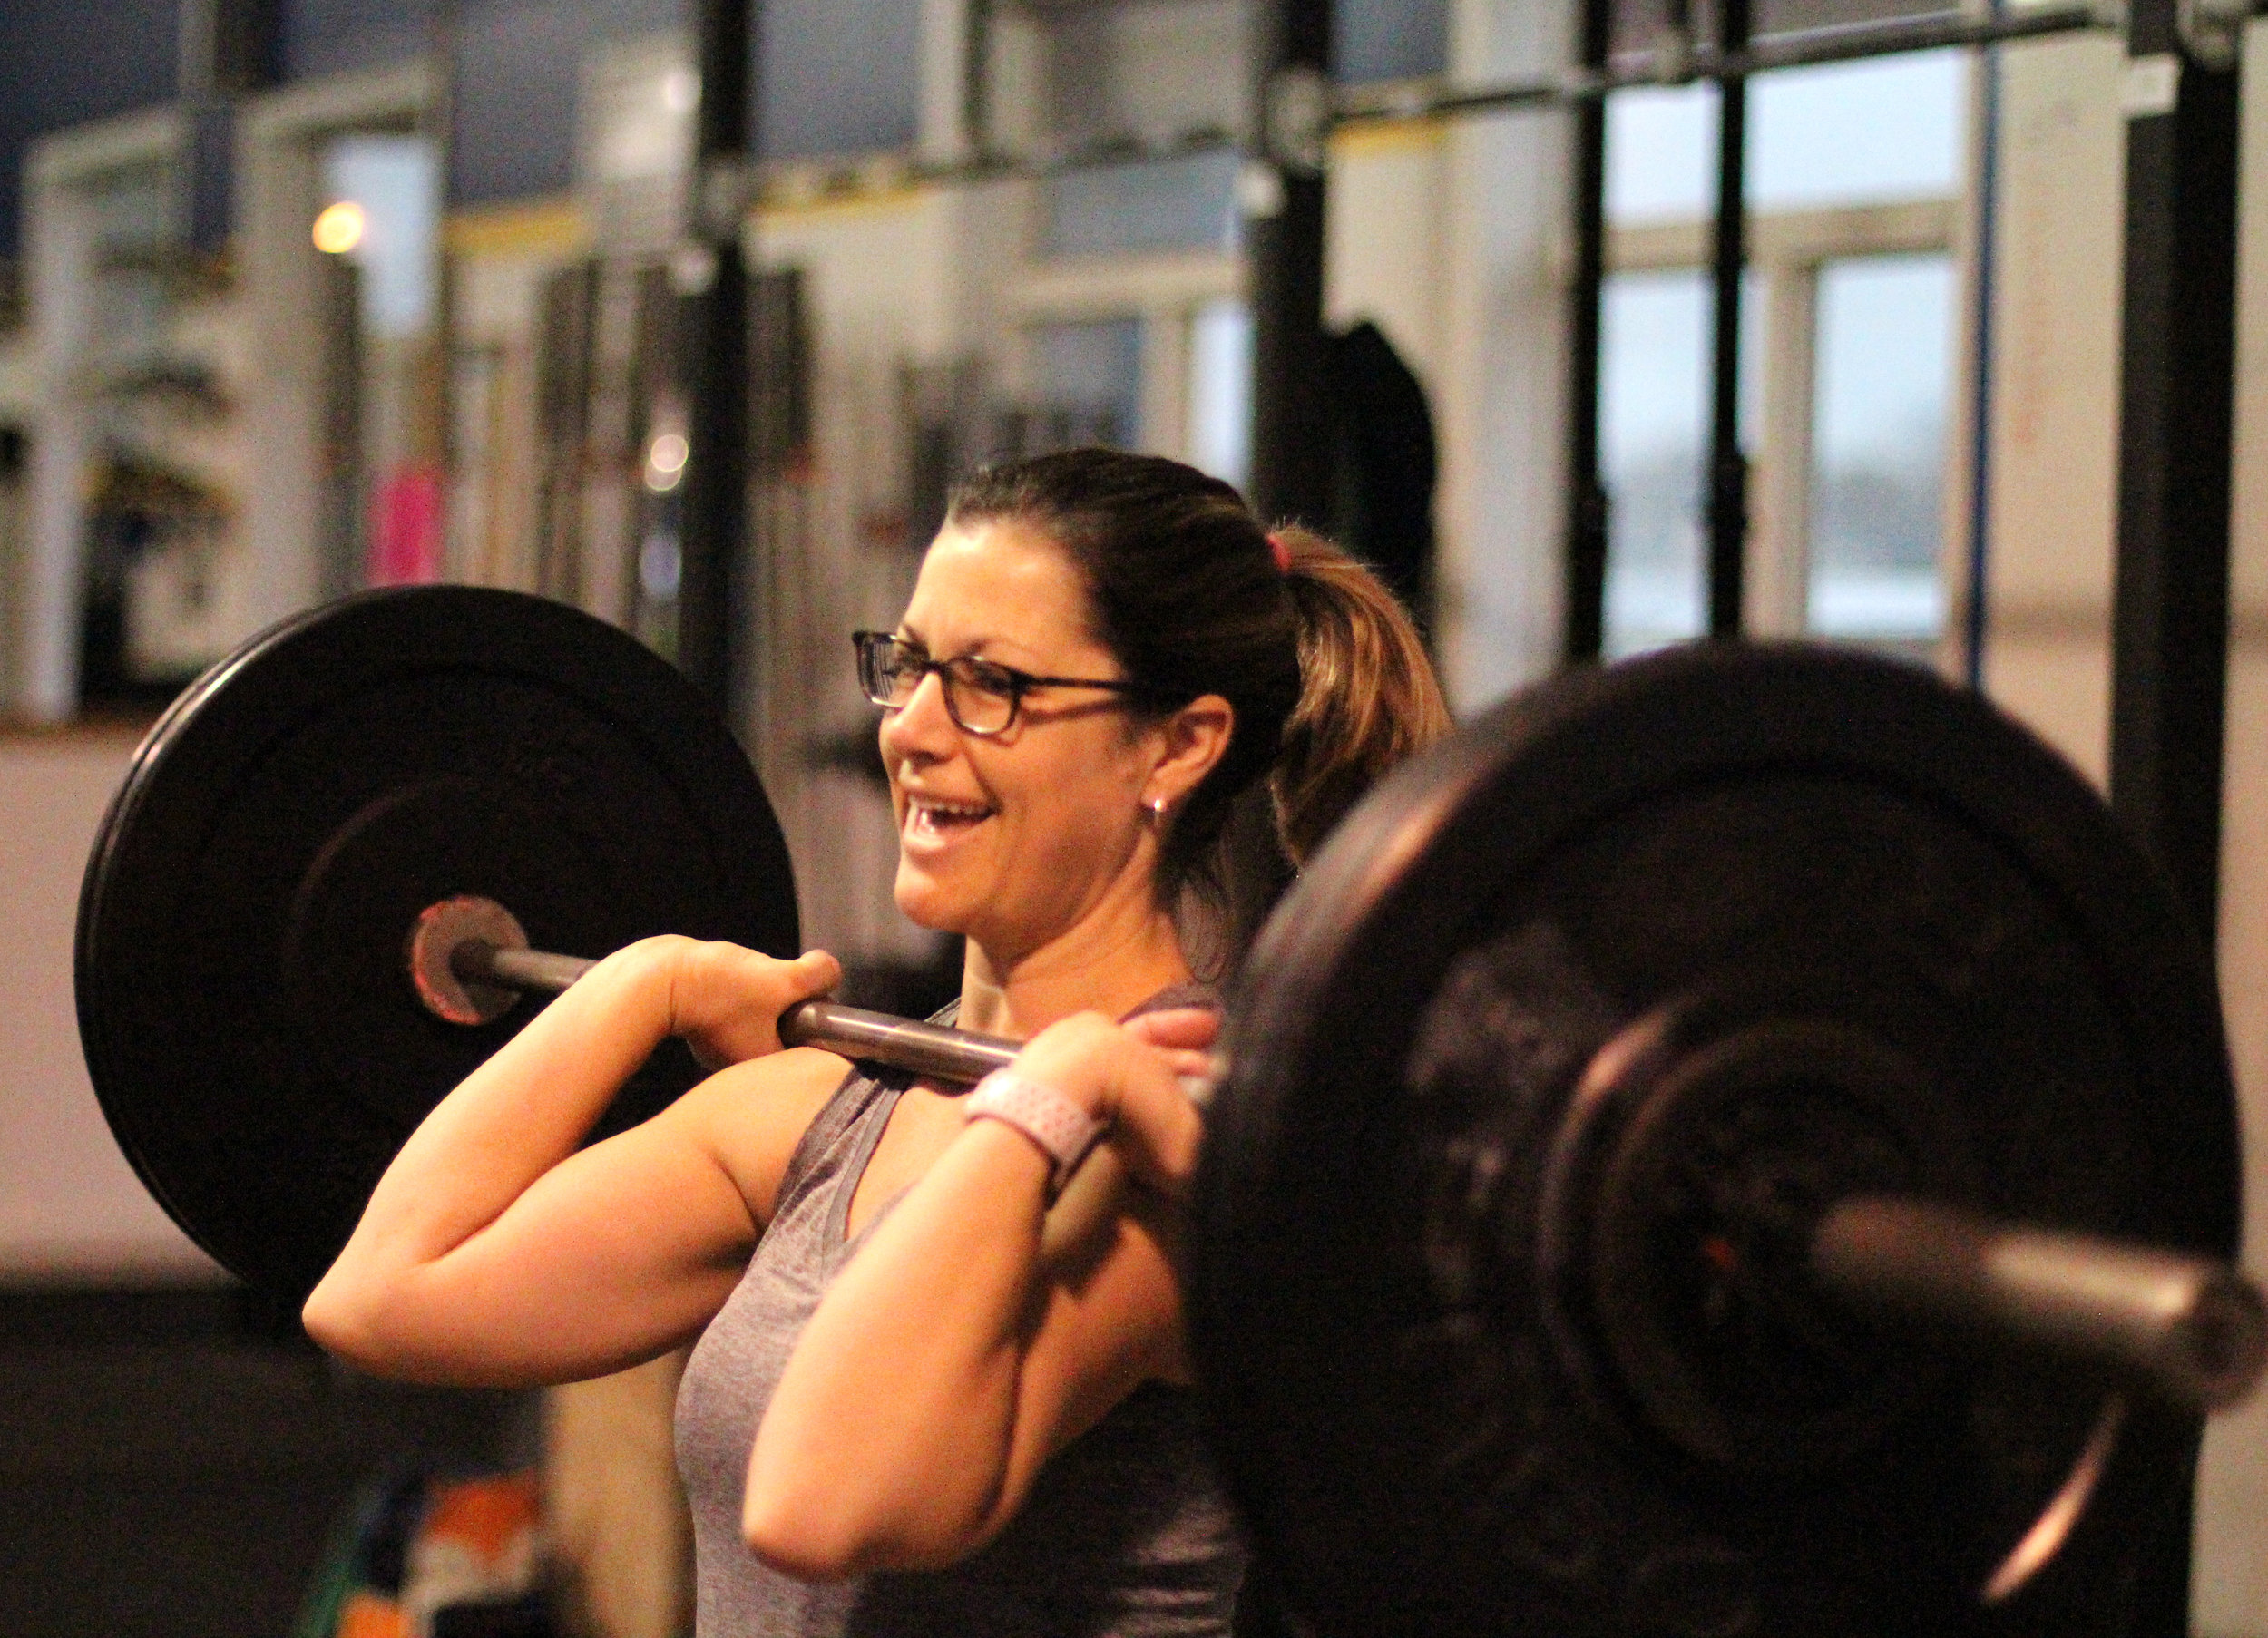 Here's to loving thrusters as much as PVCF athlete, Sharon Dion!